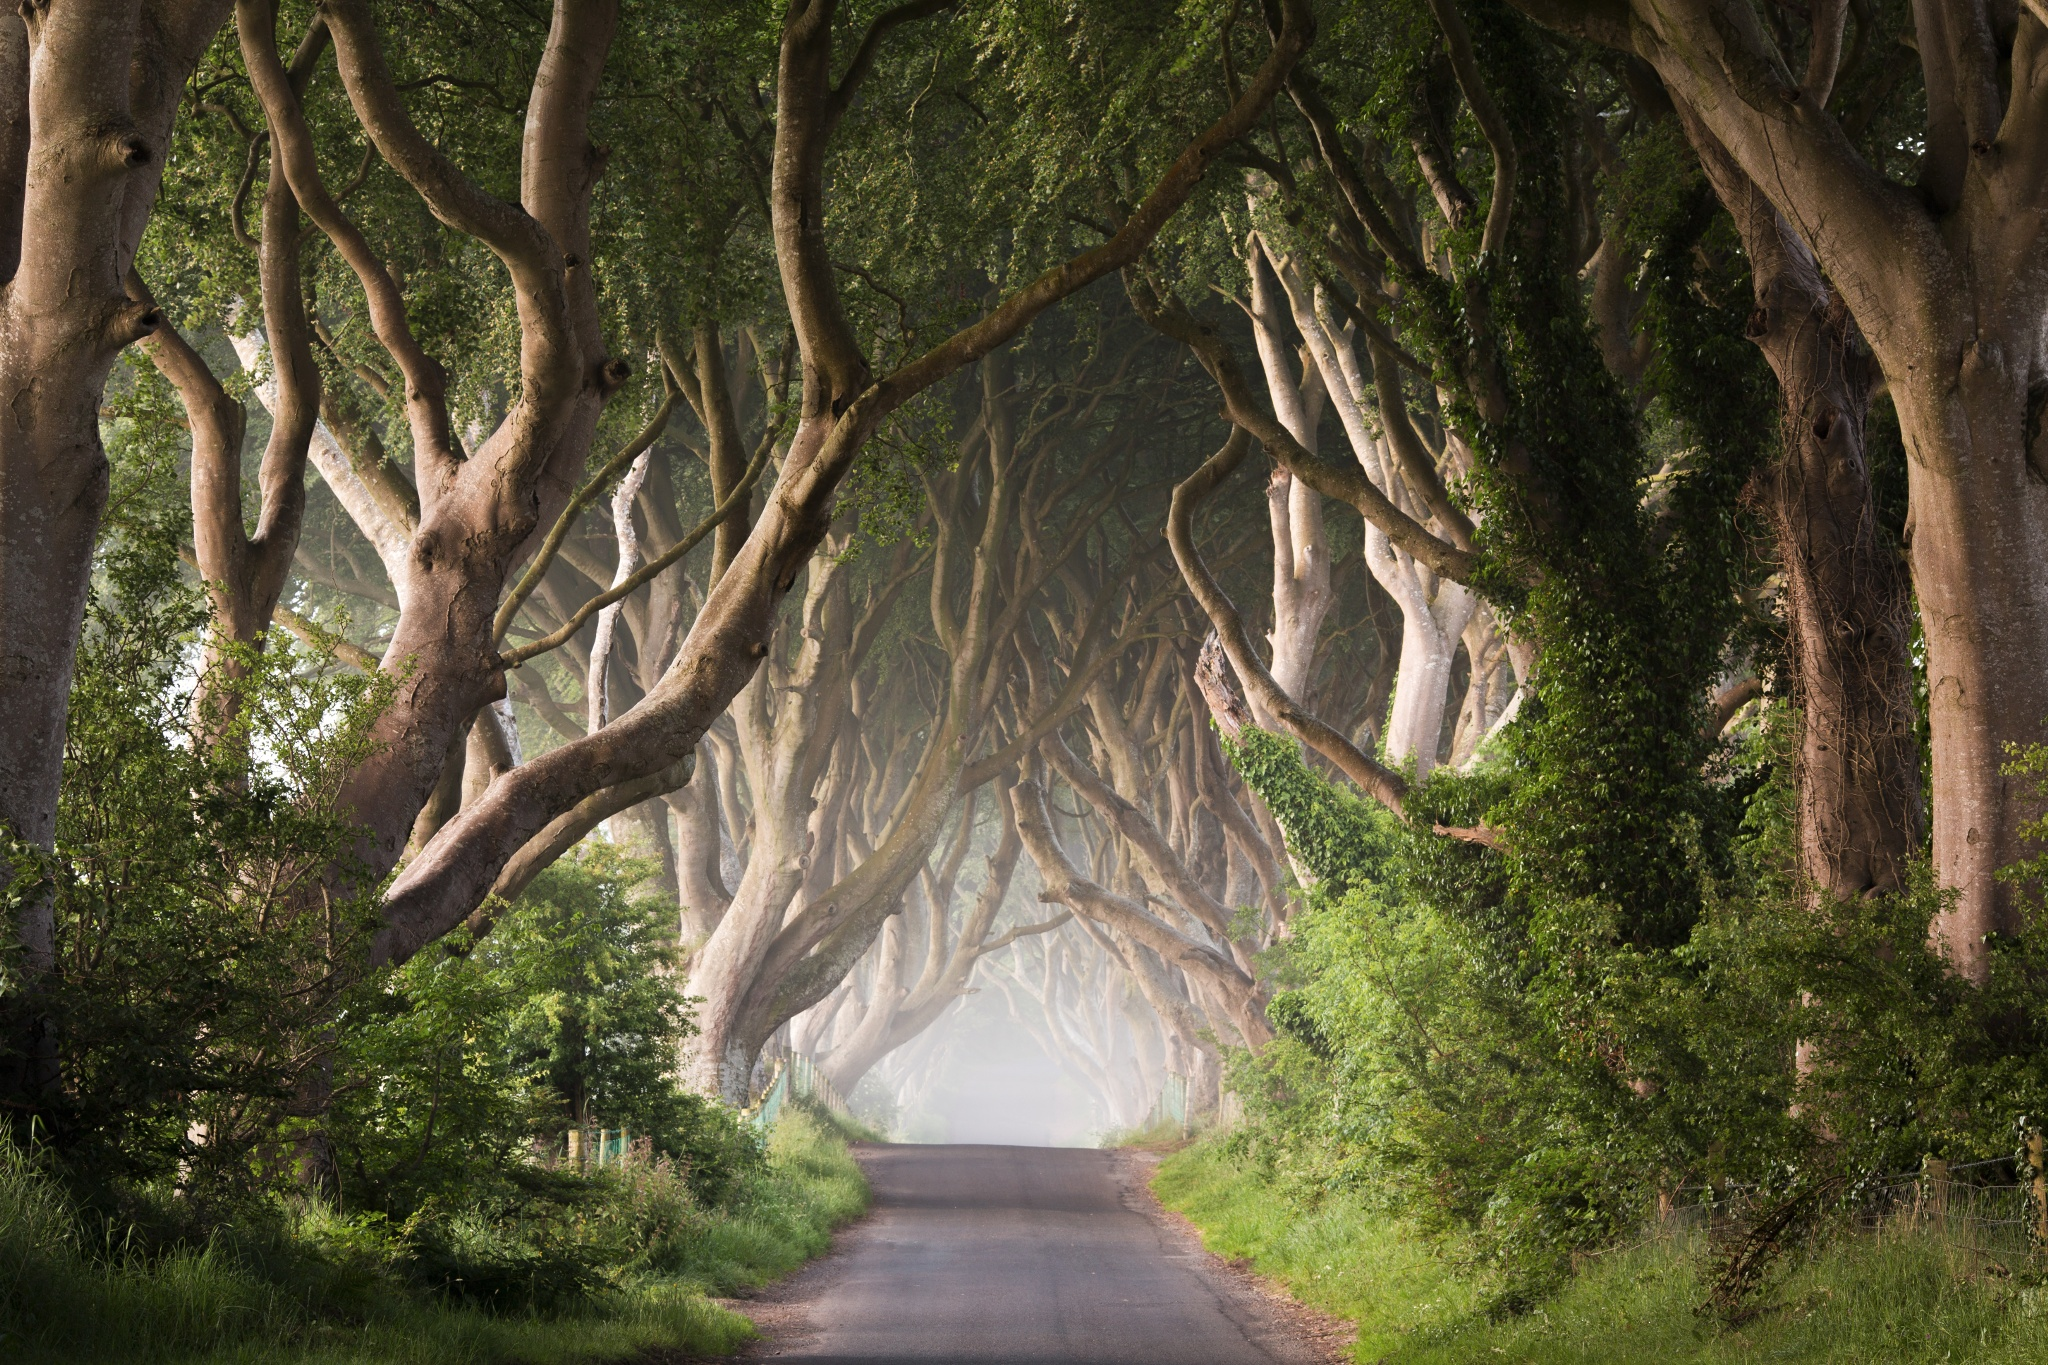 Dark-Hedges-Games-of-Thrones-by-Przemyslaw-Zdrojewski-on-px-wallpaper-wp424843